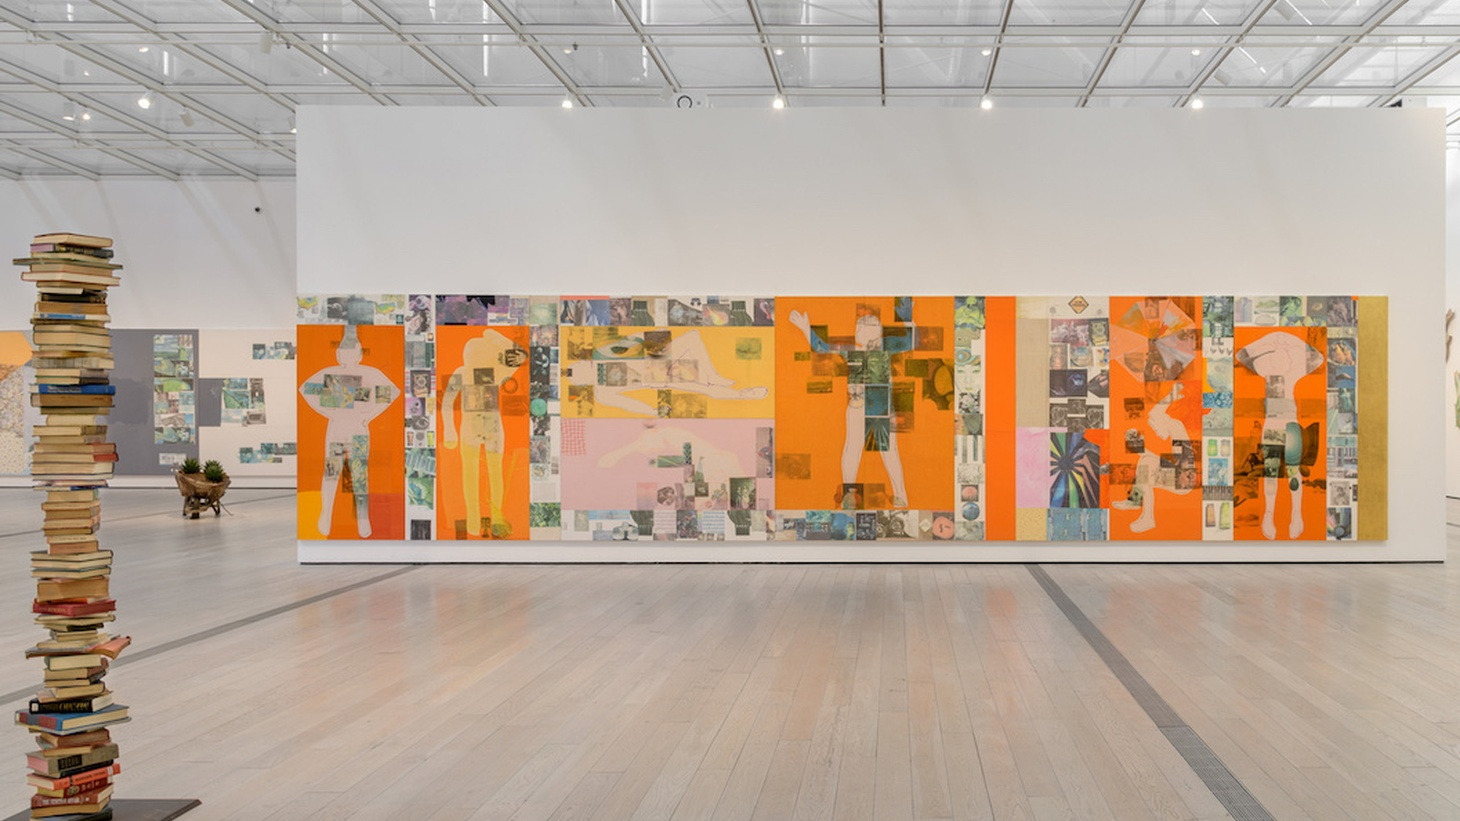 Edward Goldman talks about the 1000-foot long masterpiece by Robert Rauschenberg at LACMA, and The Renaissance Nude at The Getty Museum.